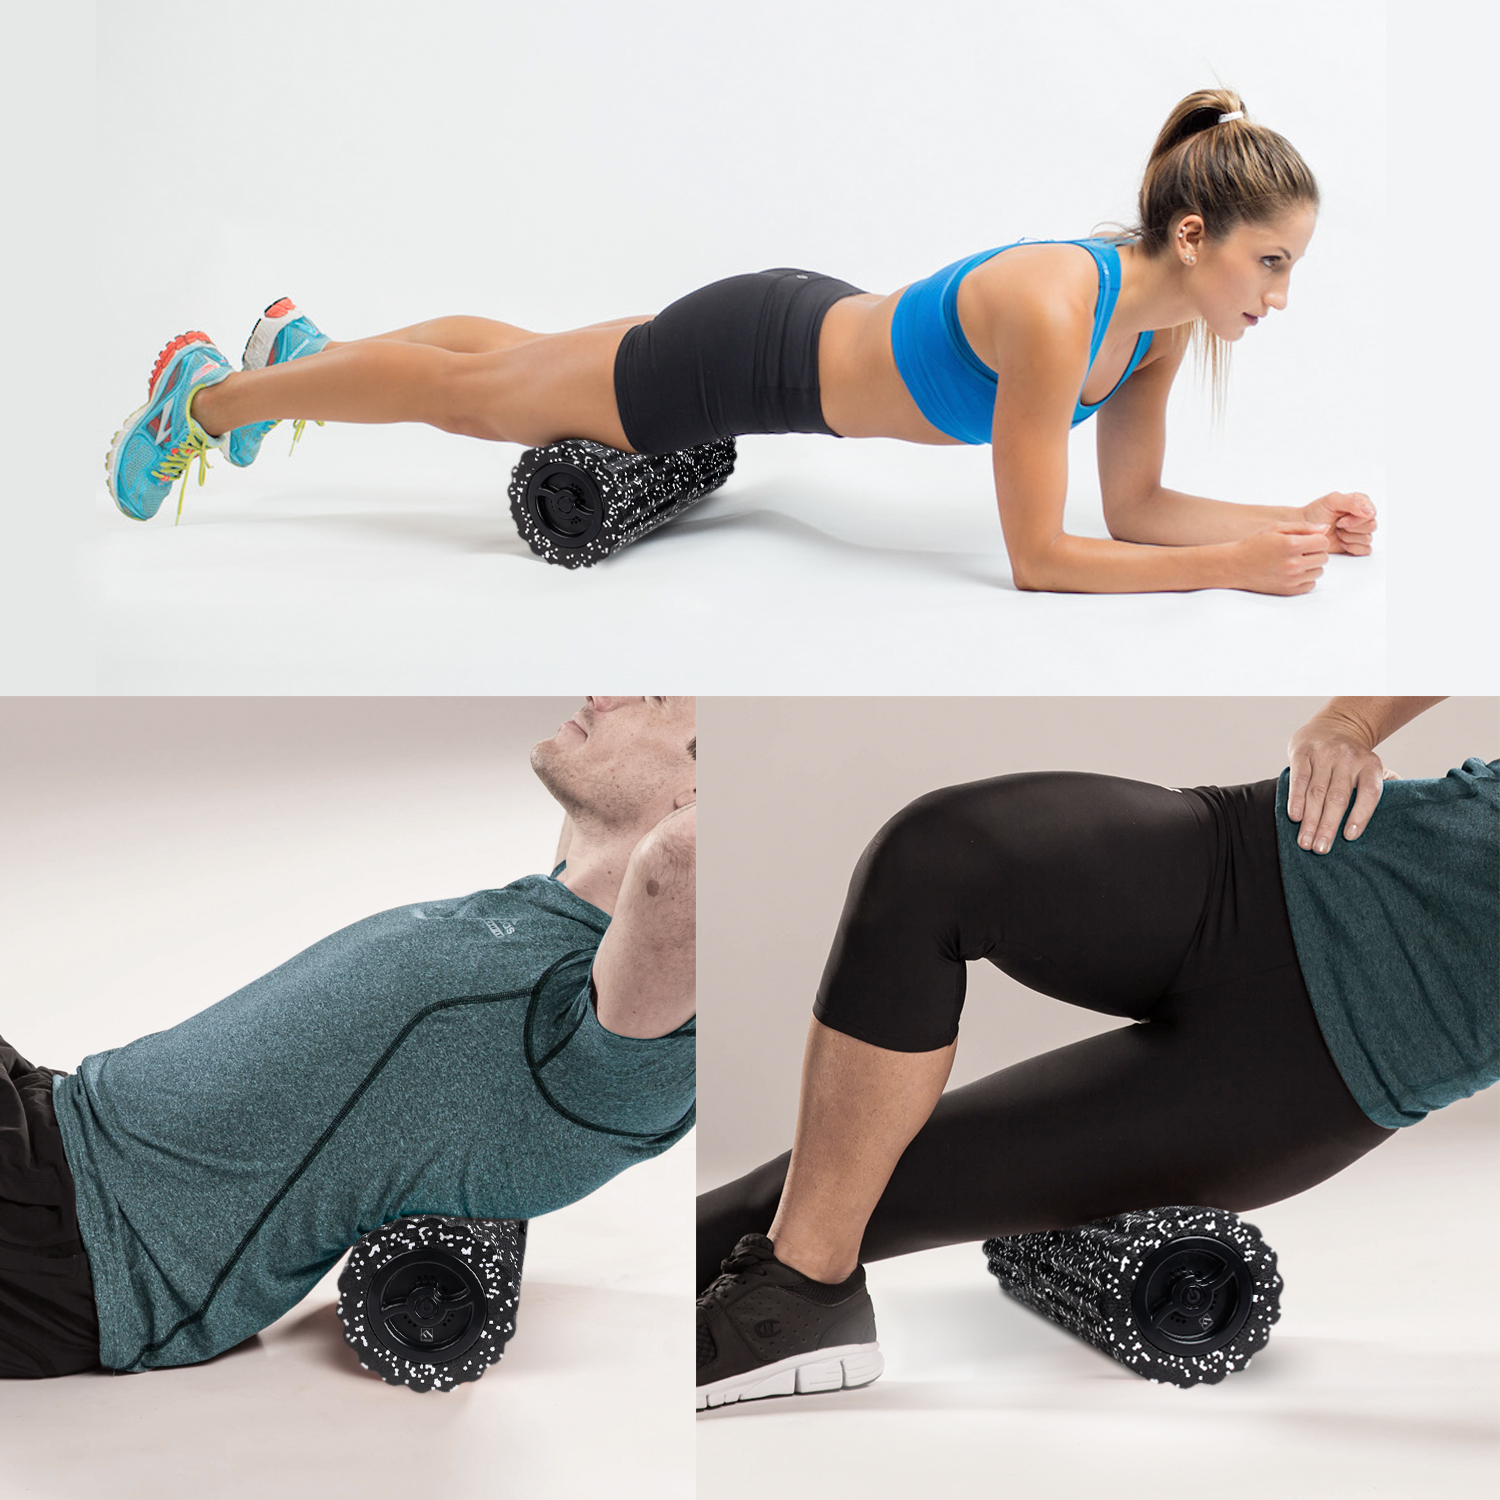 SPORTS COMPANION - The new generation massage foam roller is suitable for the people who have muscle soreness after Running, Yoga, Climbing, Weightlifting, Martial Arts, Cycling, Boxing, etc.